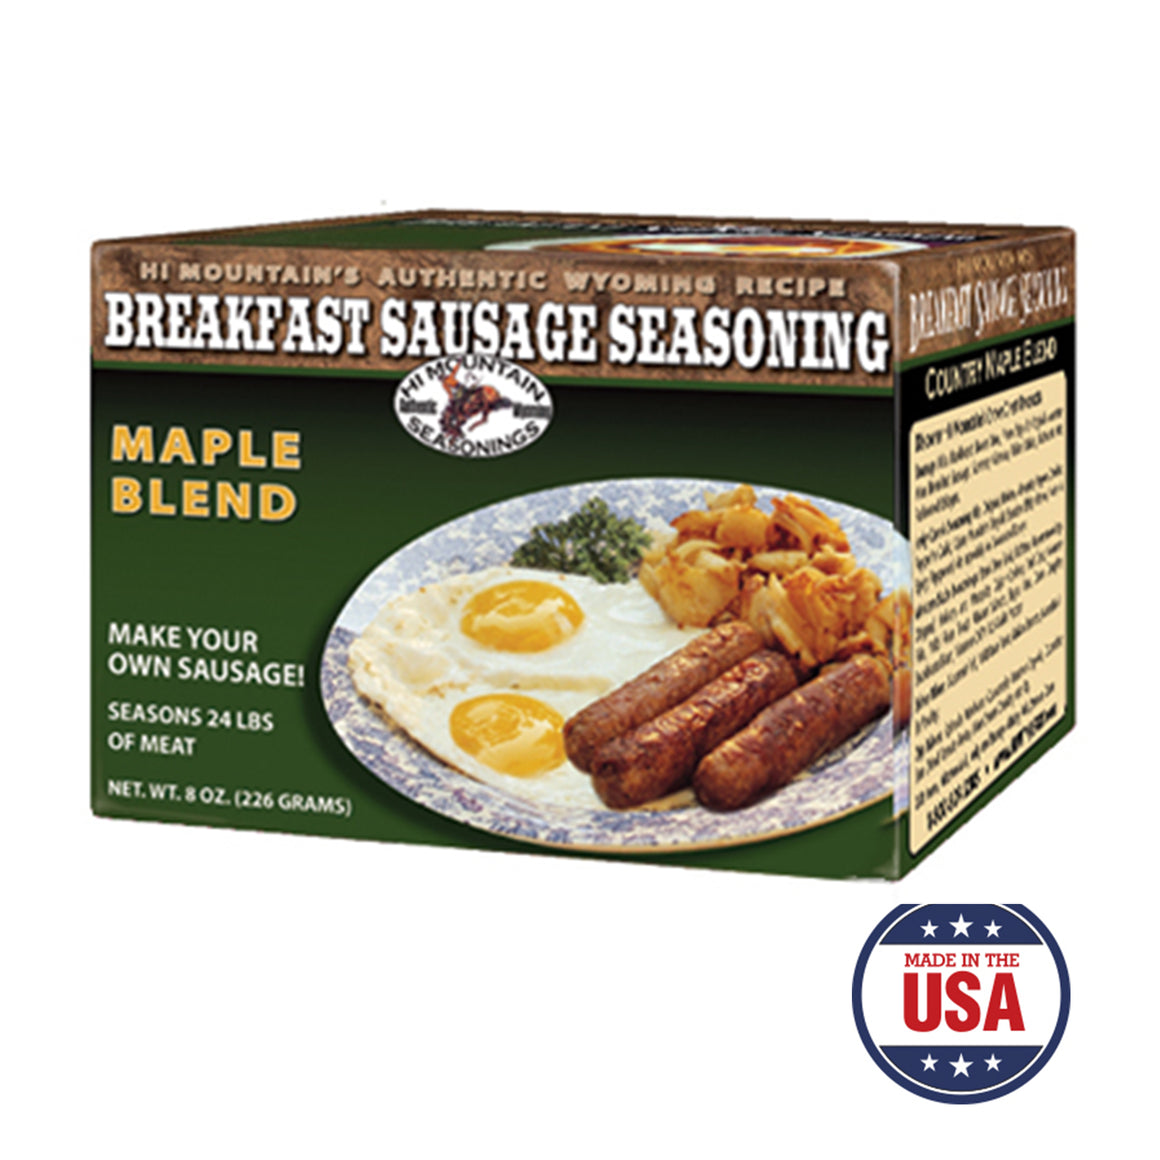 Spicy Apple Maple Blend Breakfast Sausage Making Kit